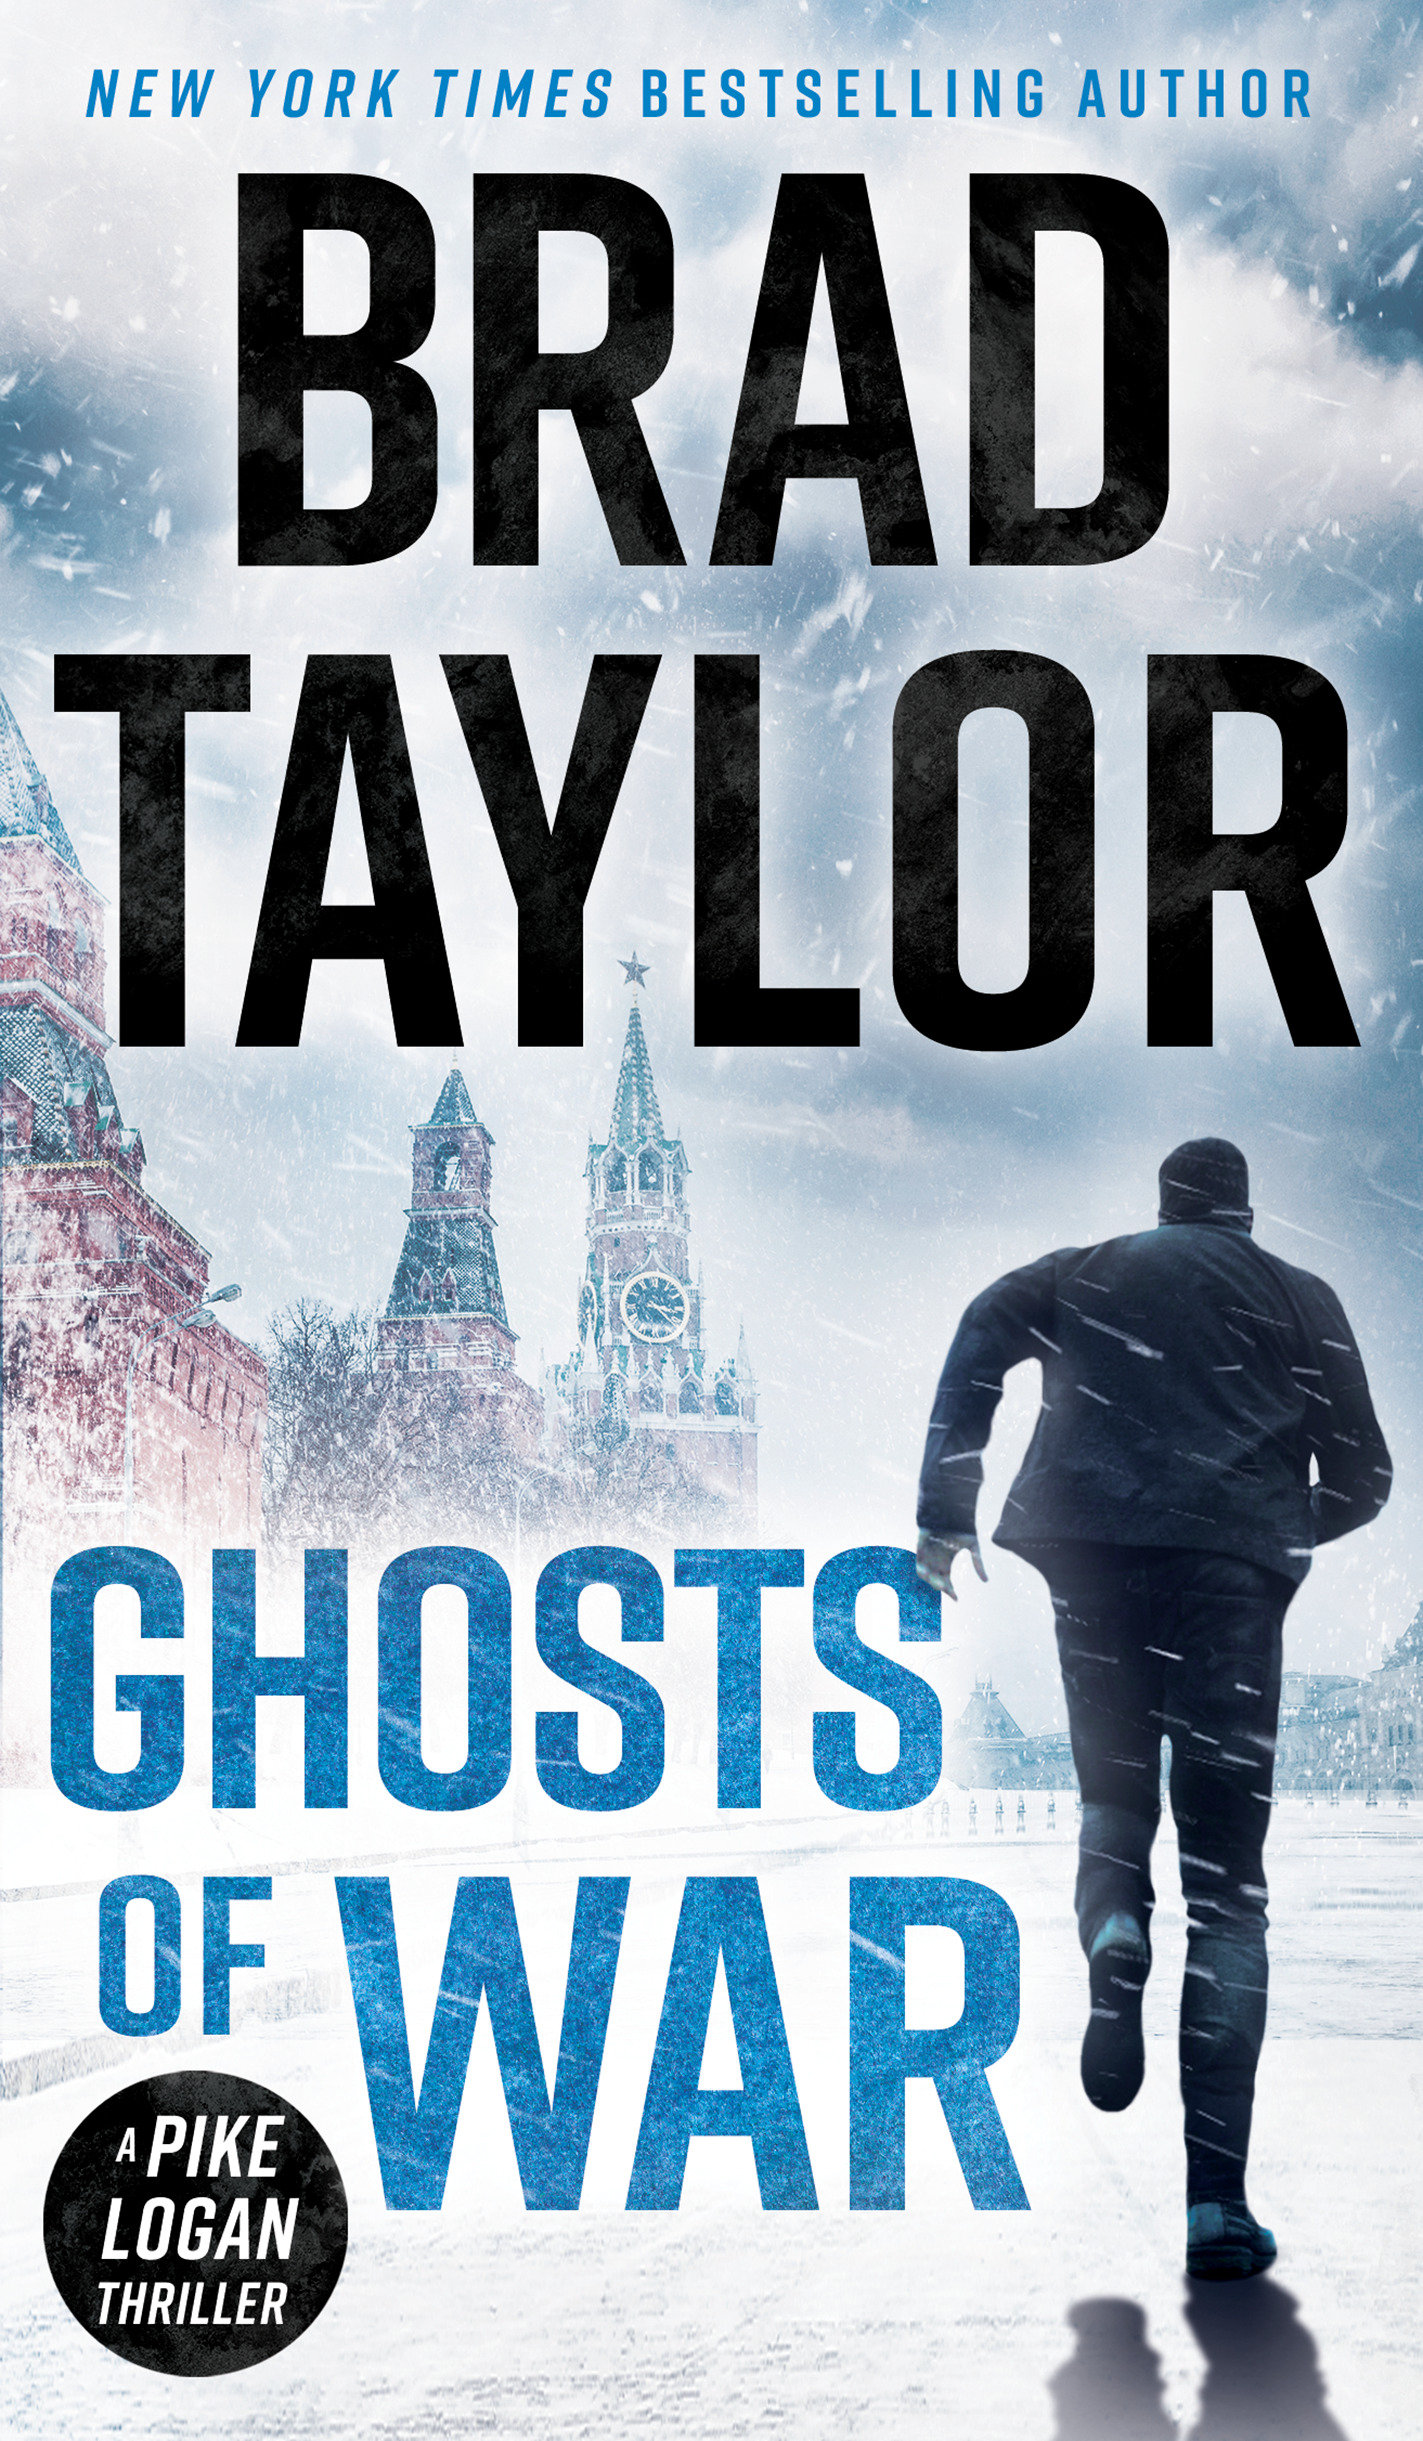 Ghosts of War A Pike Logan Thriller